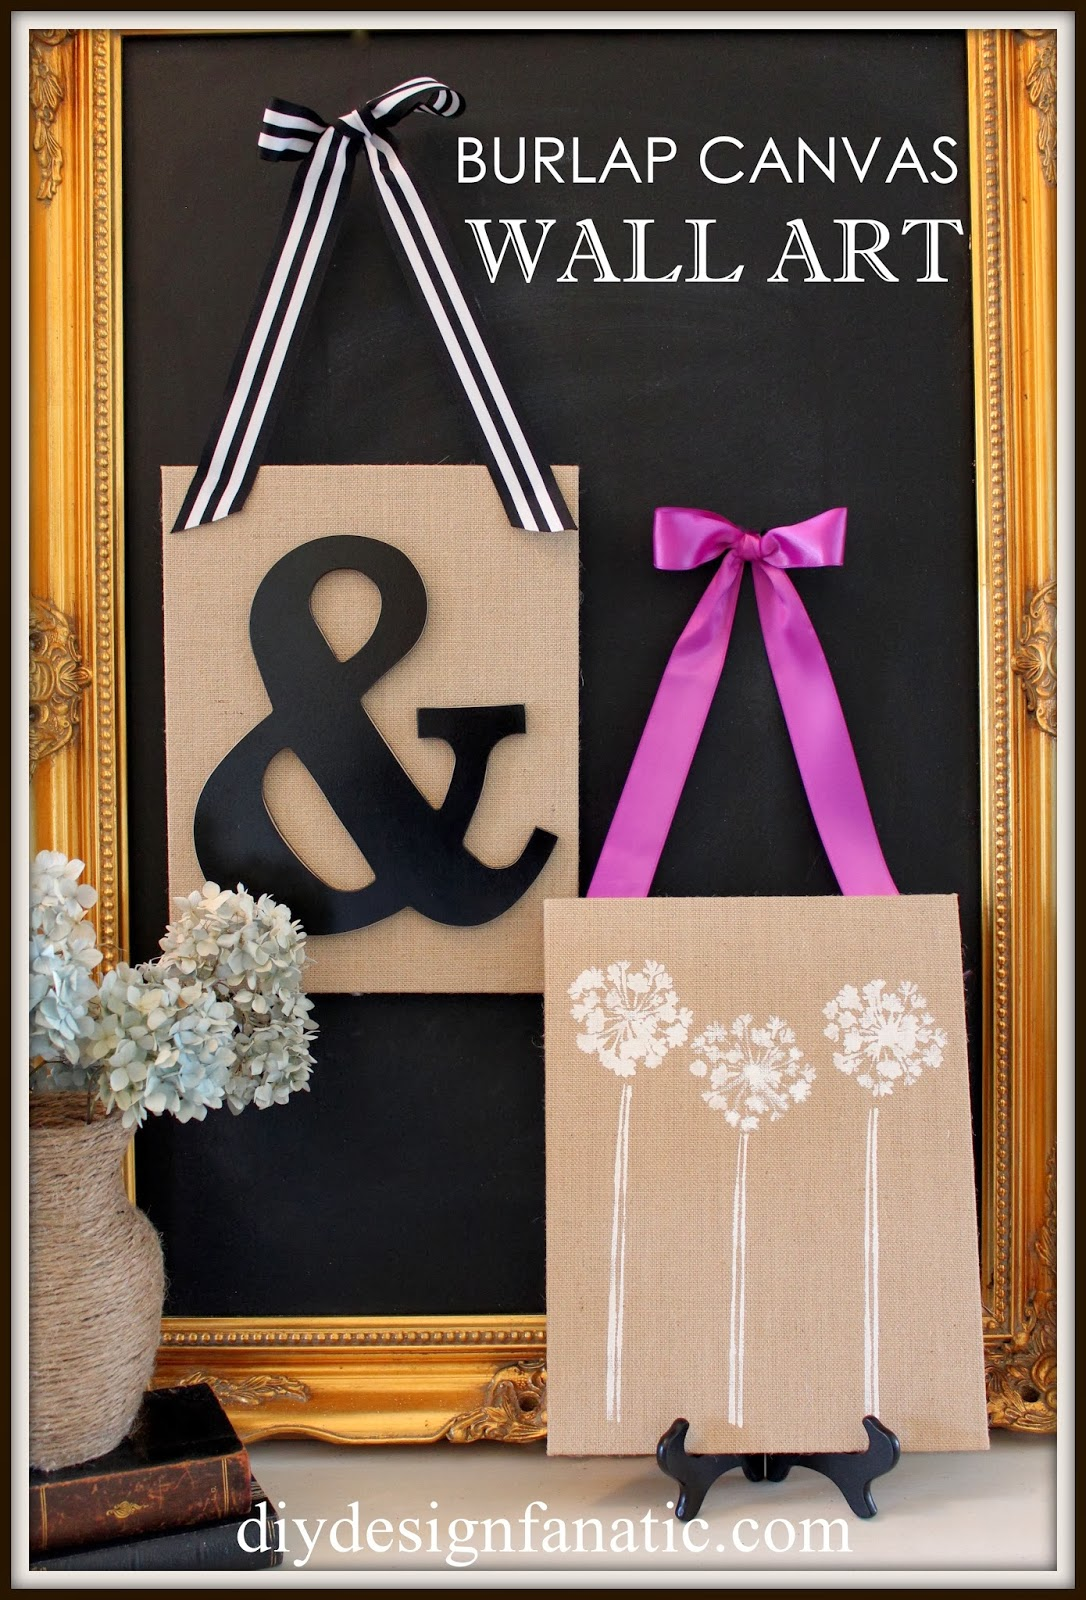 Best Yesterday I showed you how I made a super easy stenciled burlap wall art